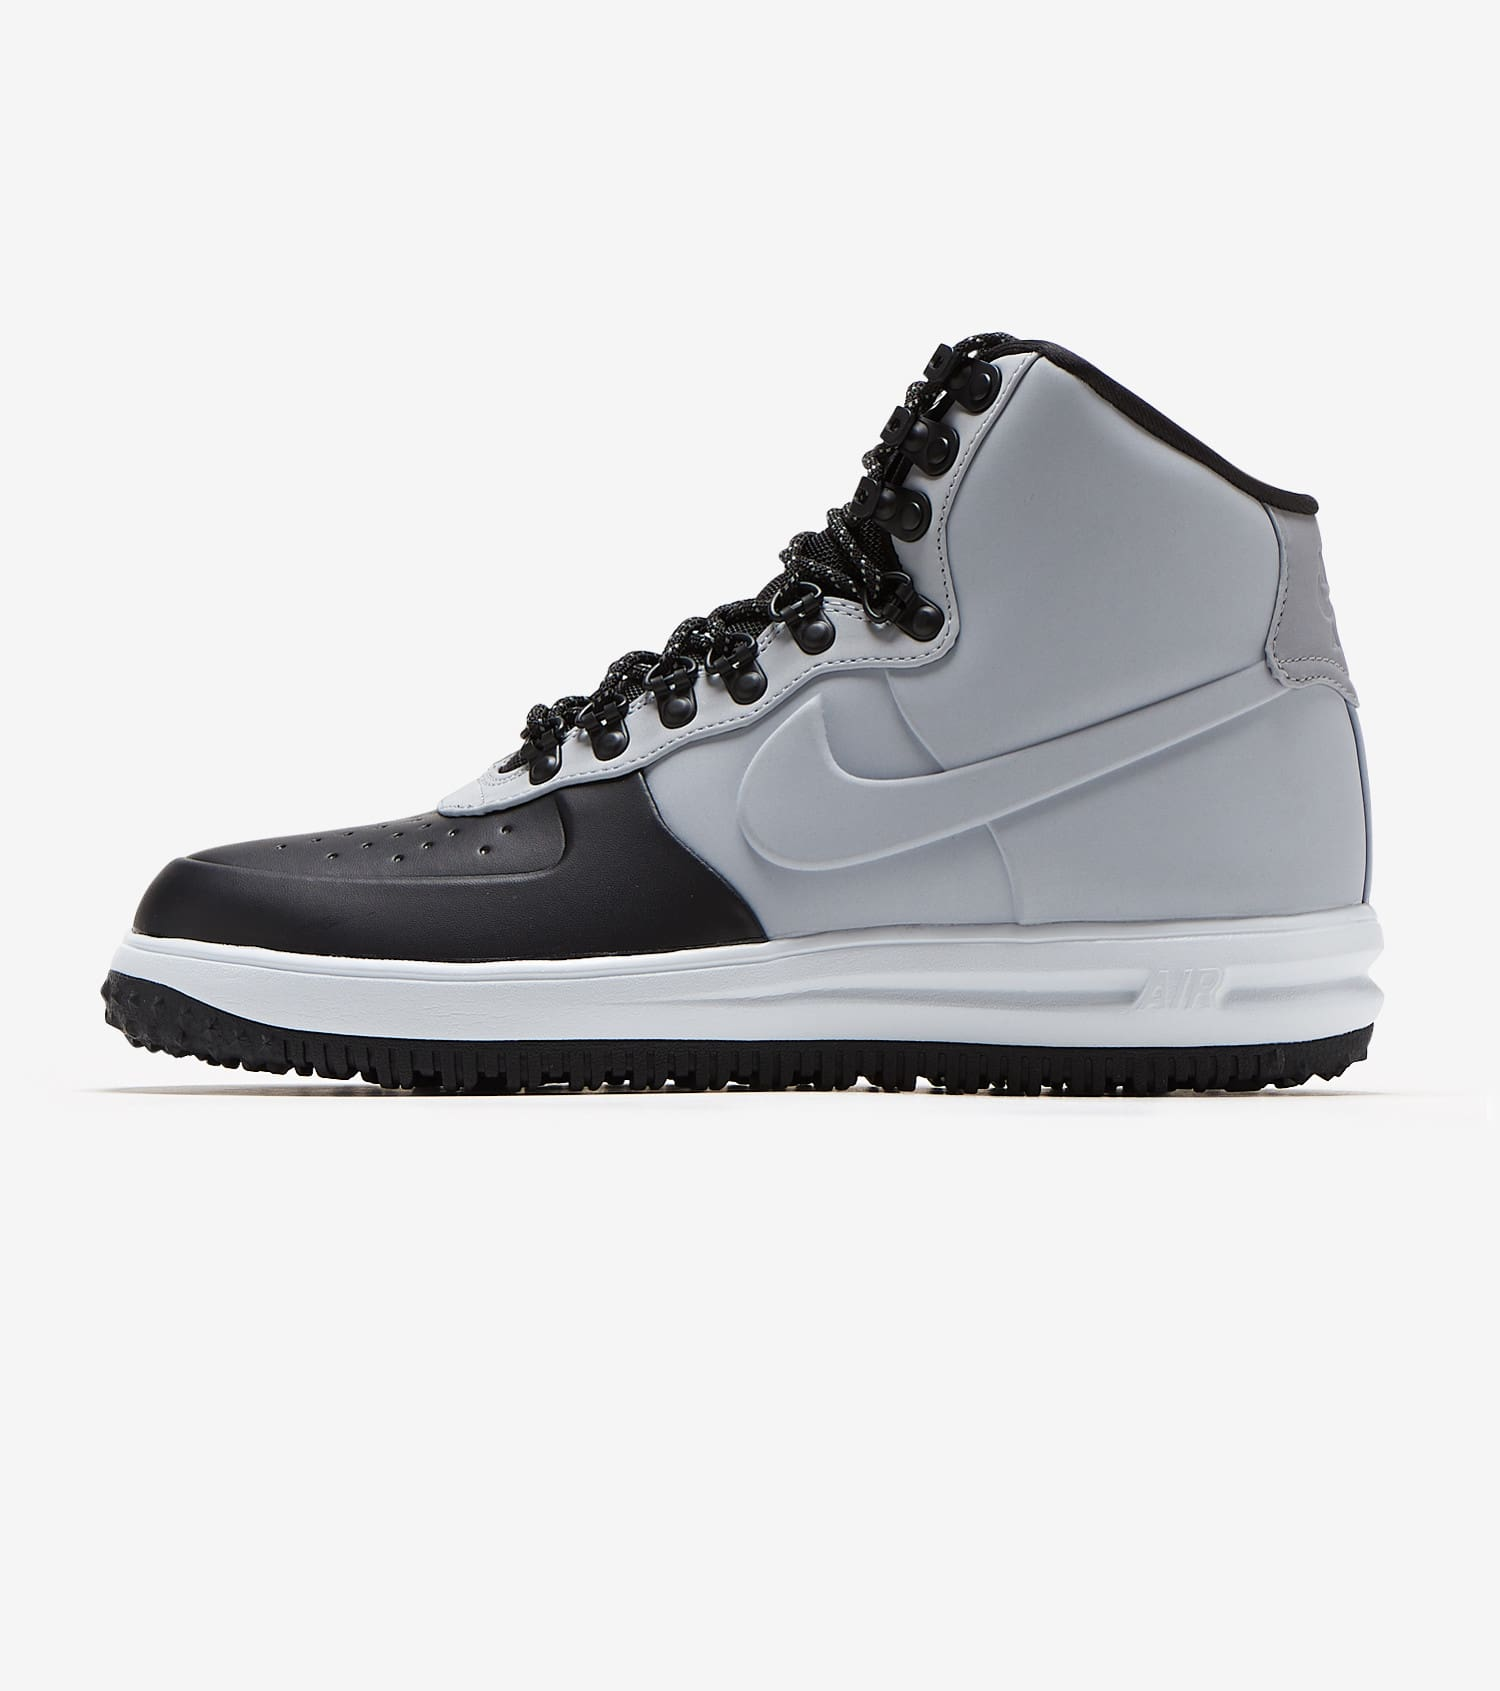 uk availability be356 c899a Lunar Force 1 Duckboot '18